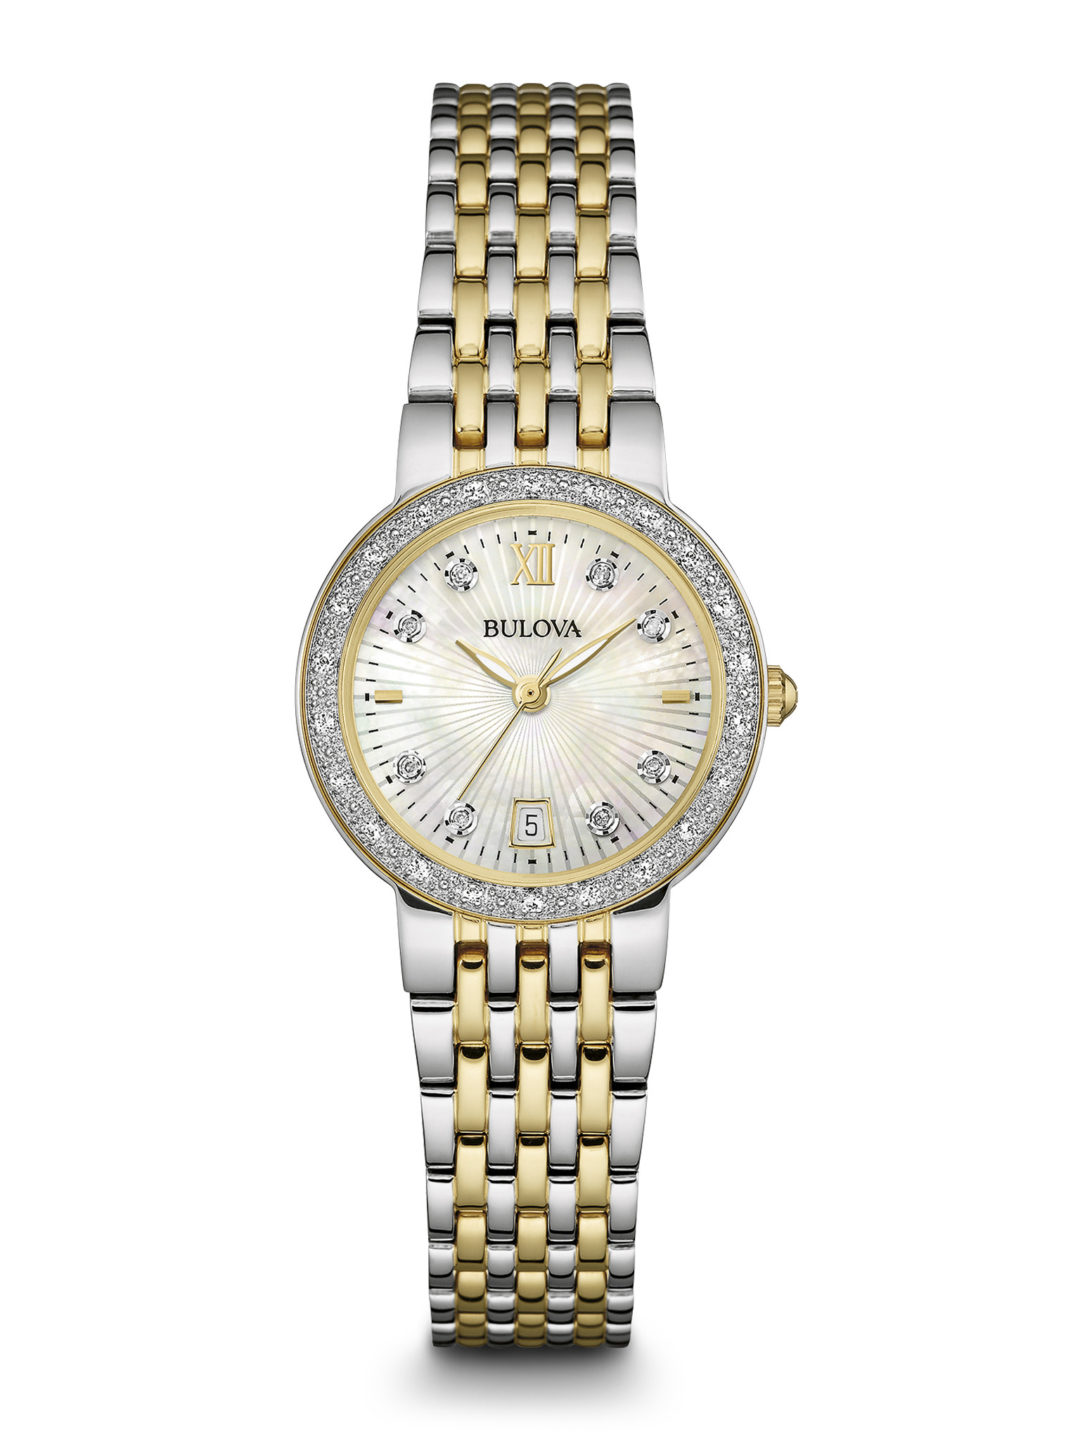 womens-bulova-diamond-watch-98r211-1.jpg